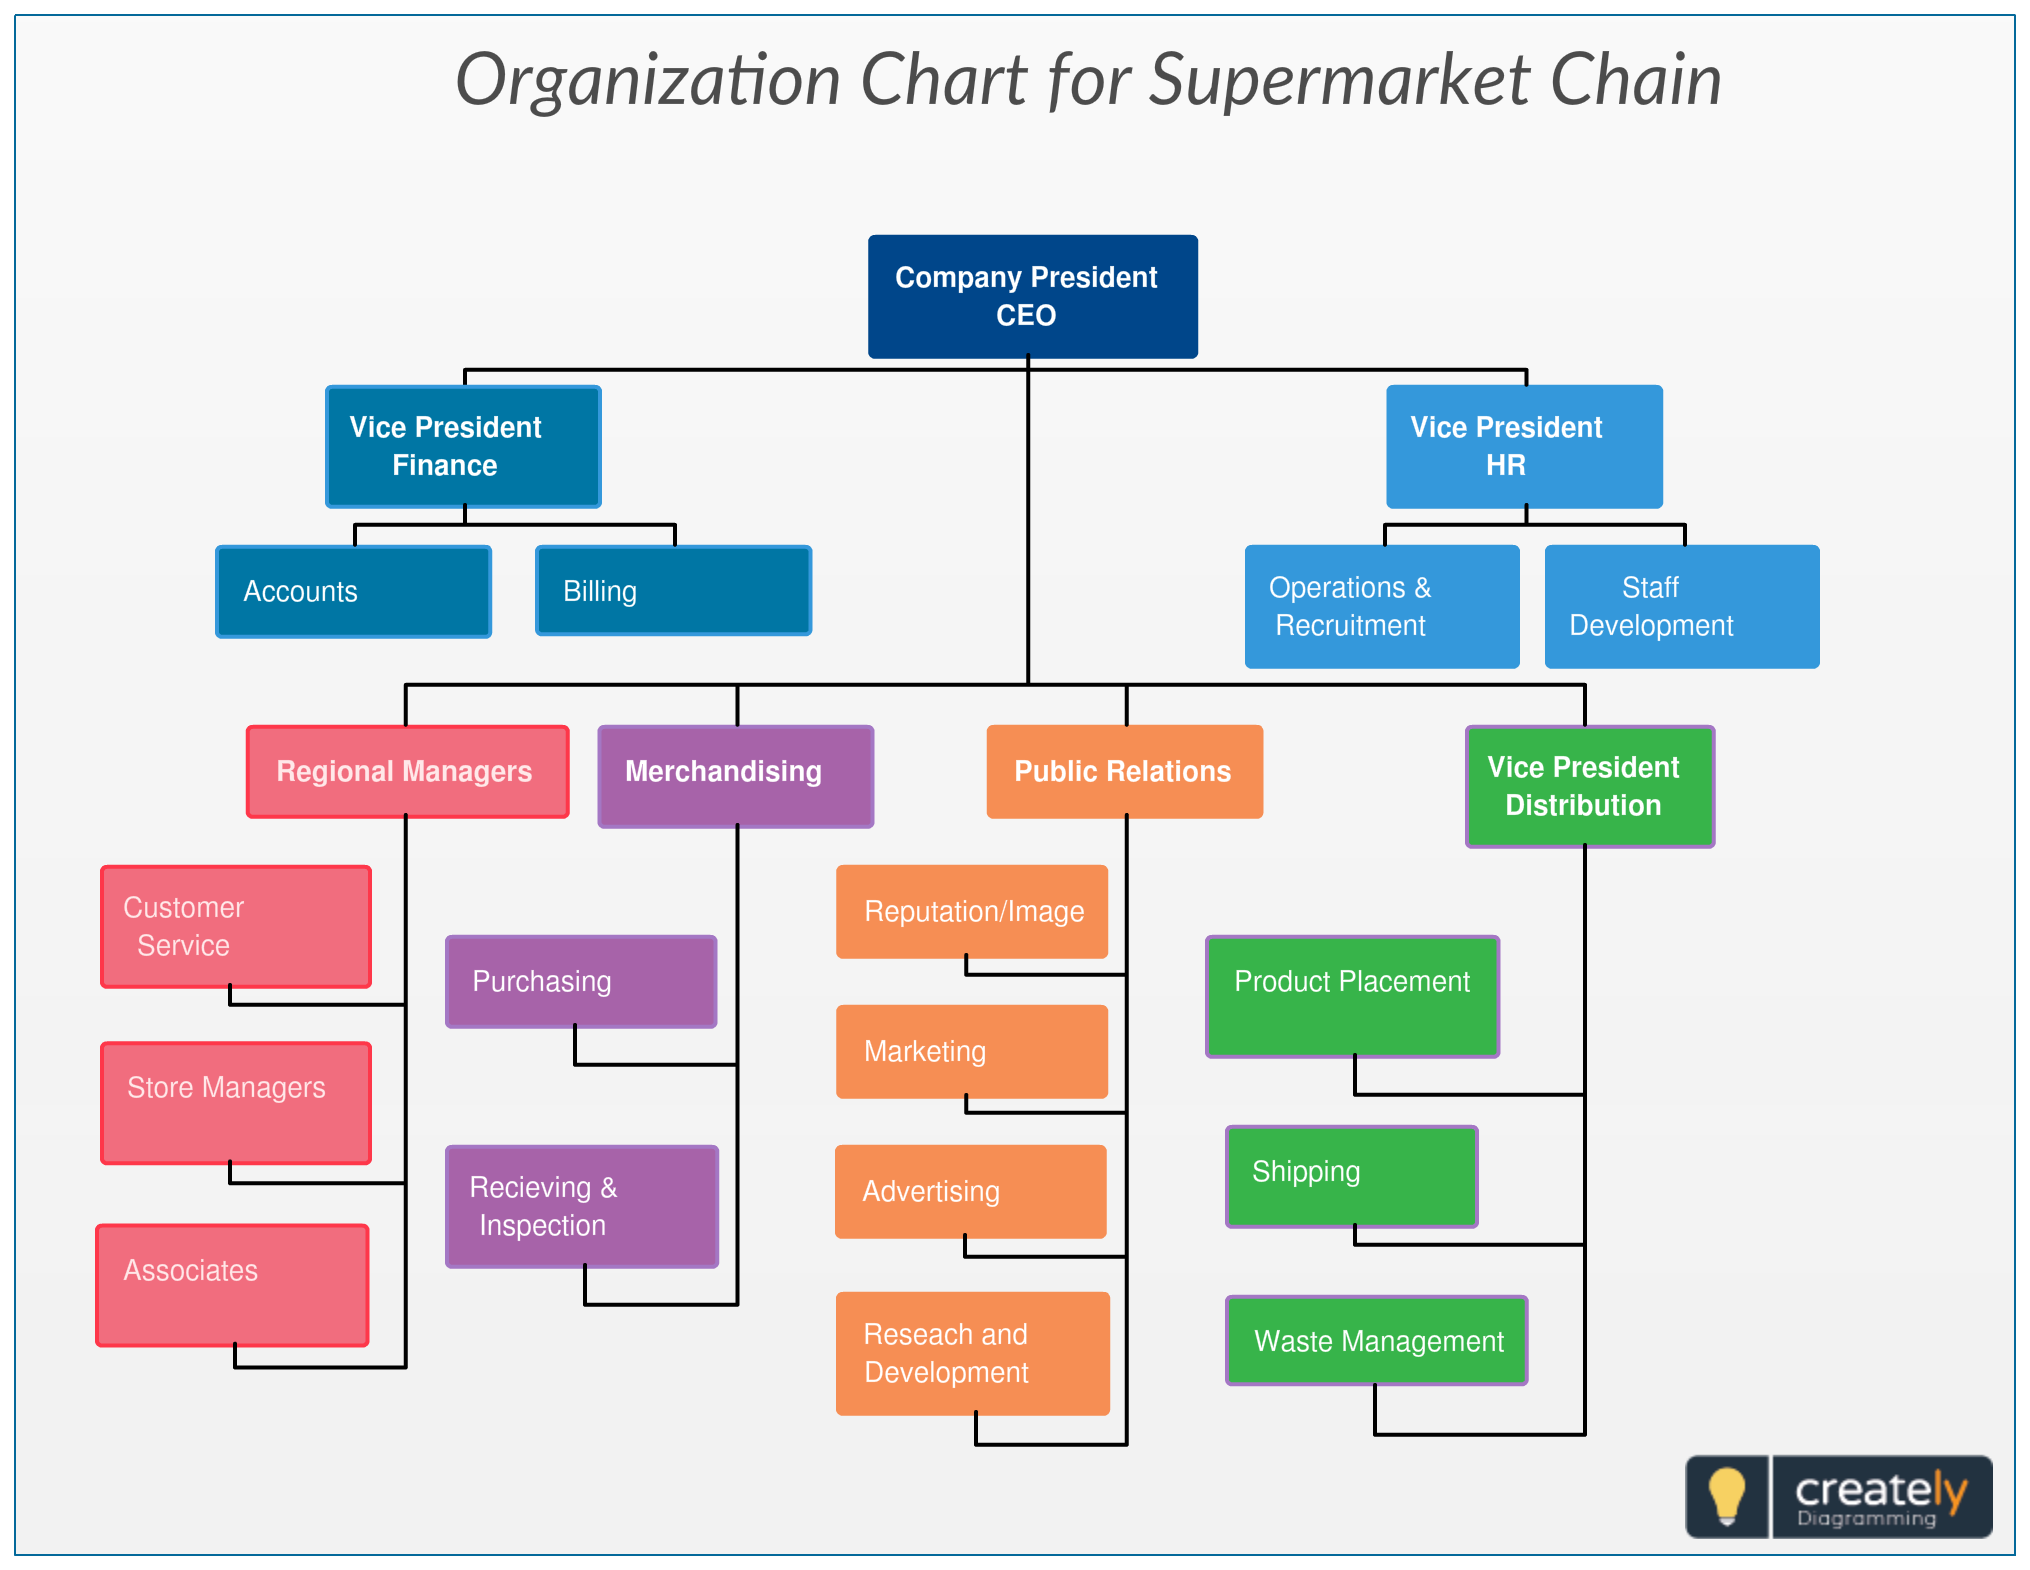 Organization Chart For Supermarket Chain Typically Shows A